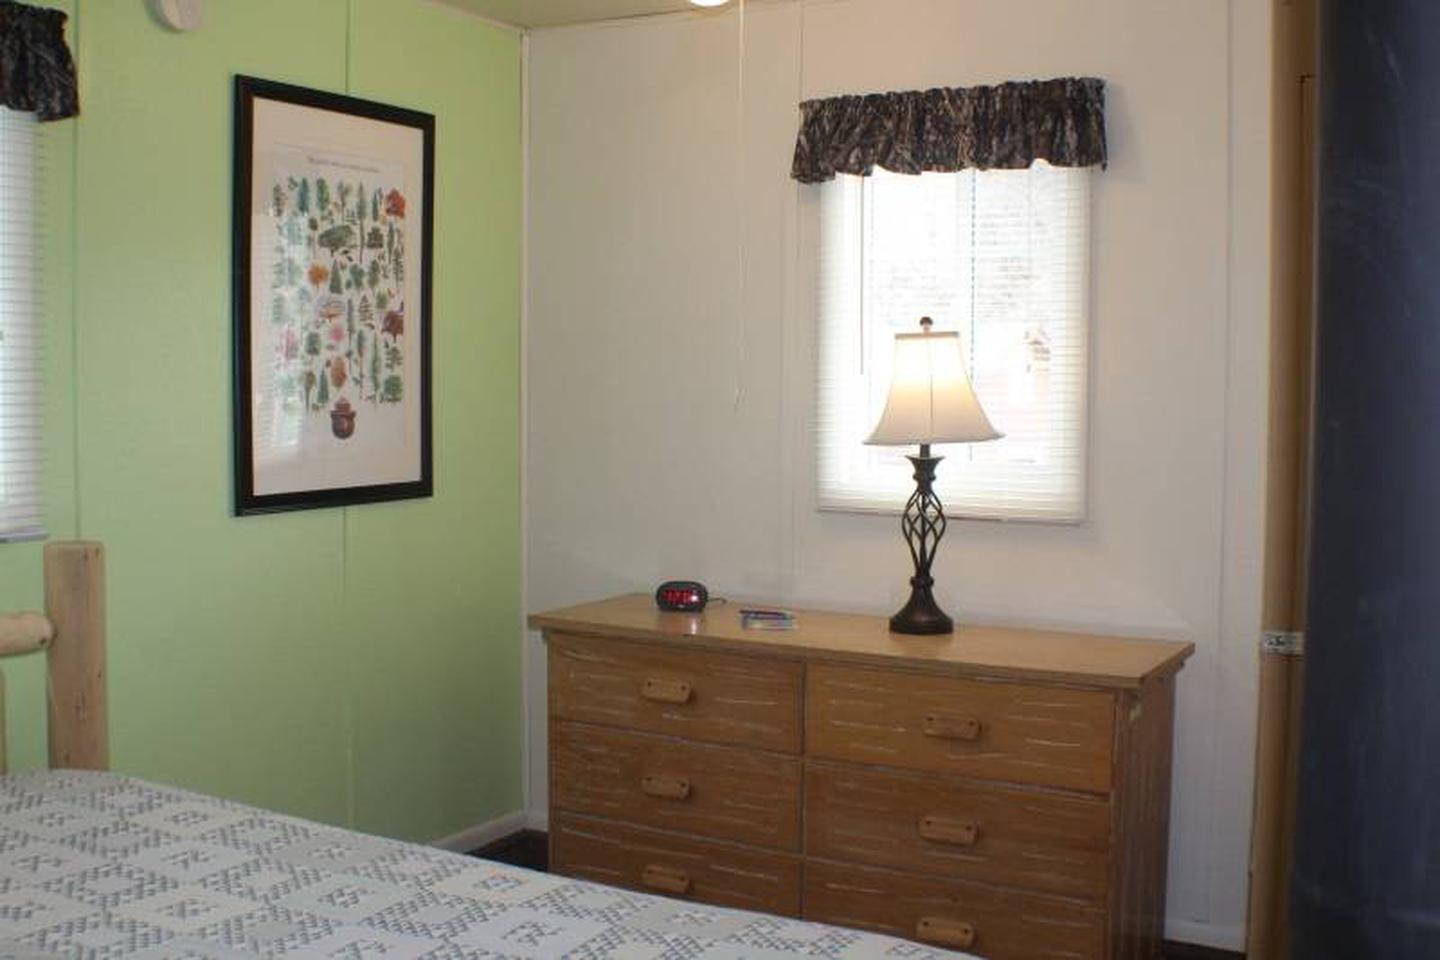 Dresser, lampCabin 2: View to right of full bed. Dresser with lamp, alarm clock with USB charging port.